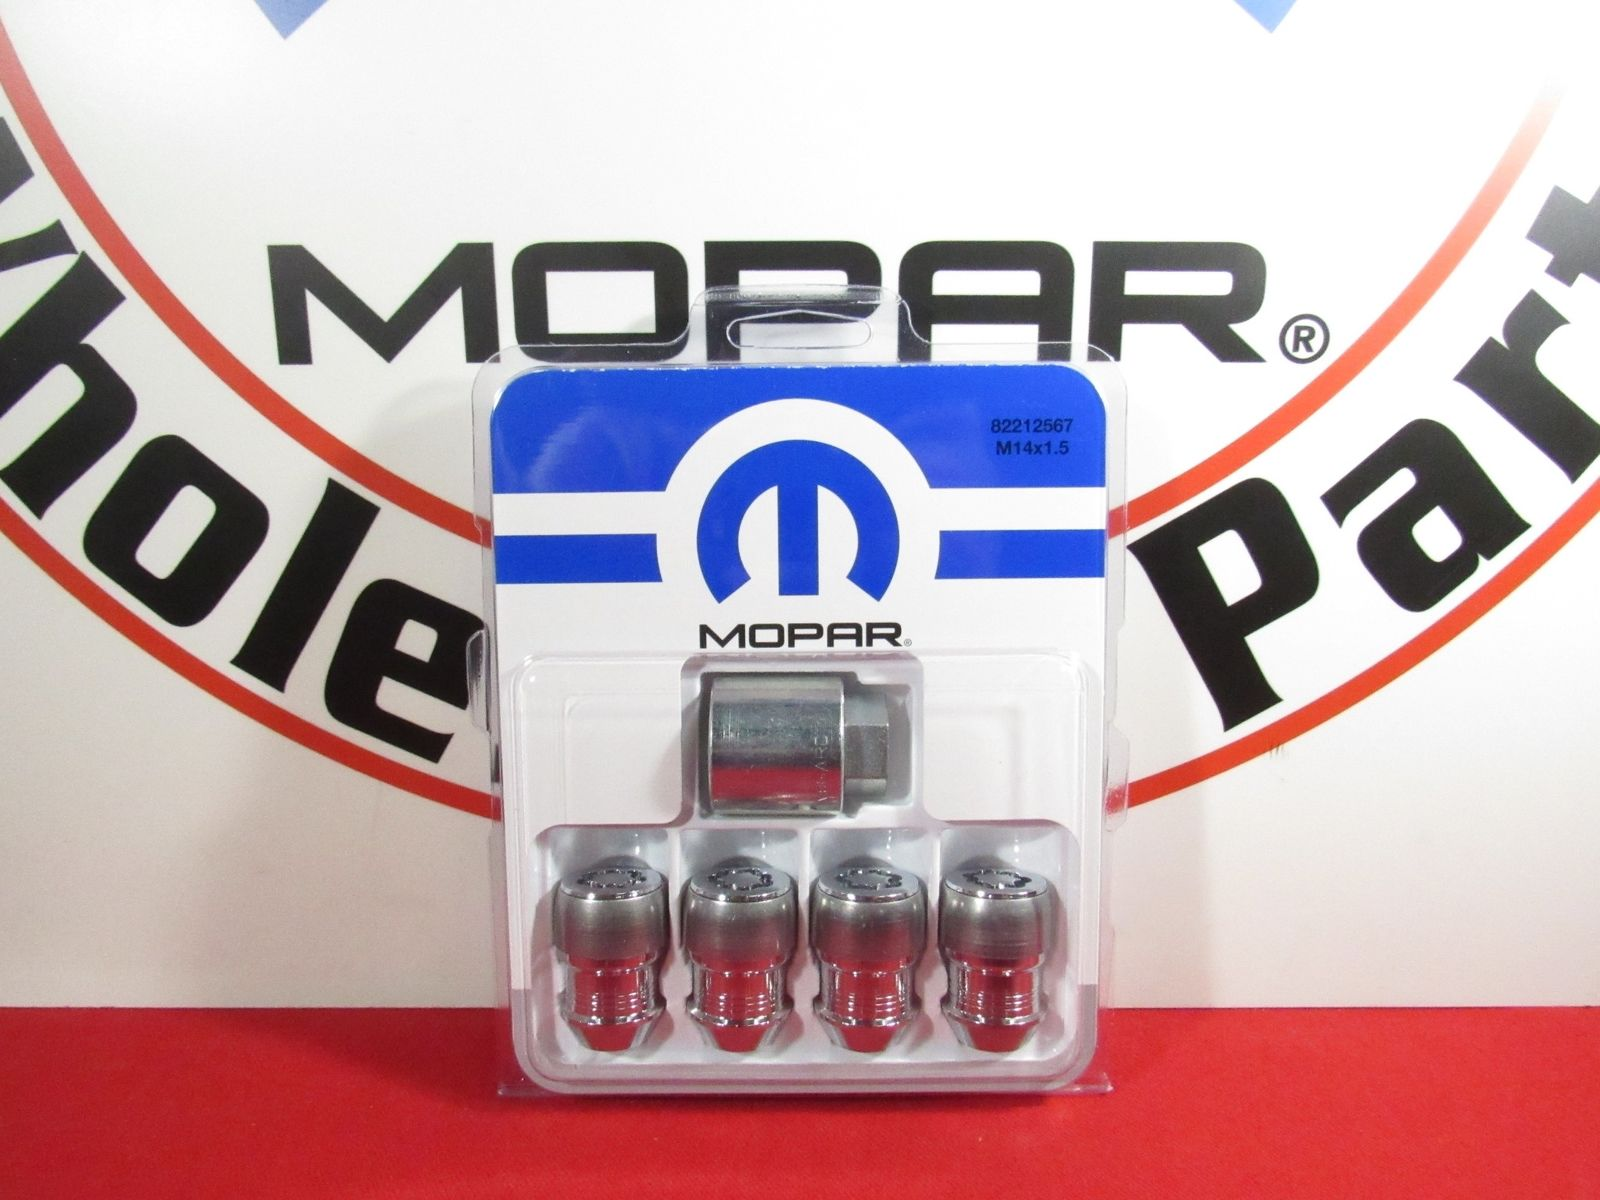 Wheel Locks - Mopar (82212567)